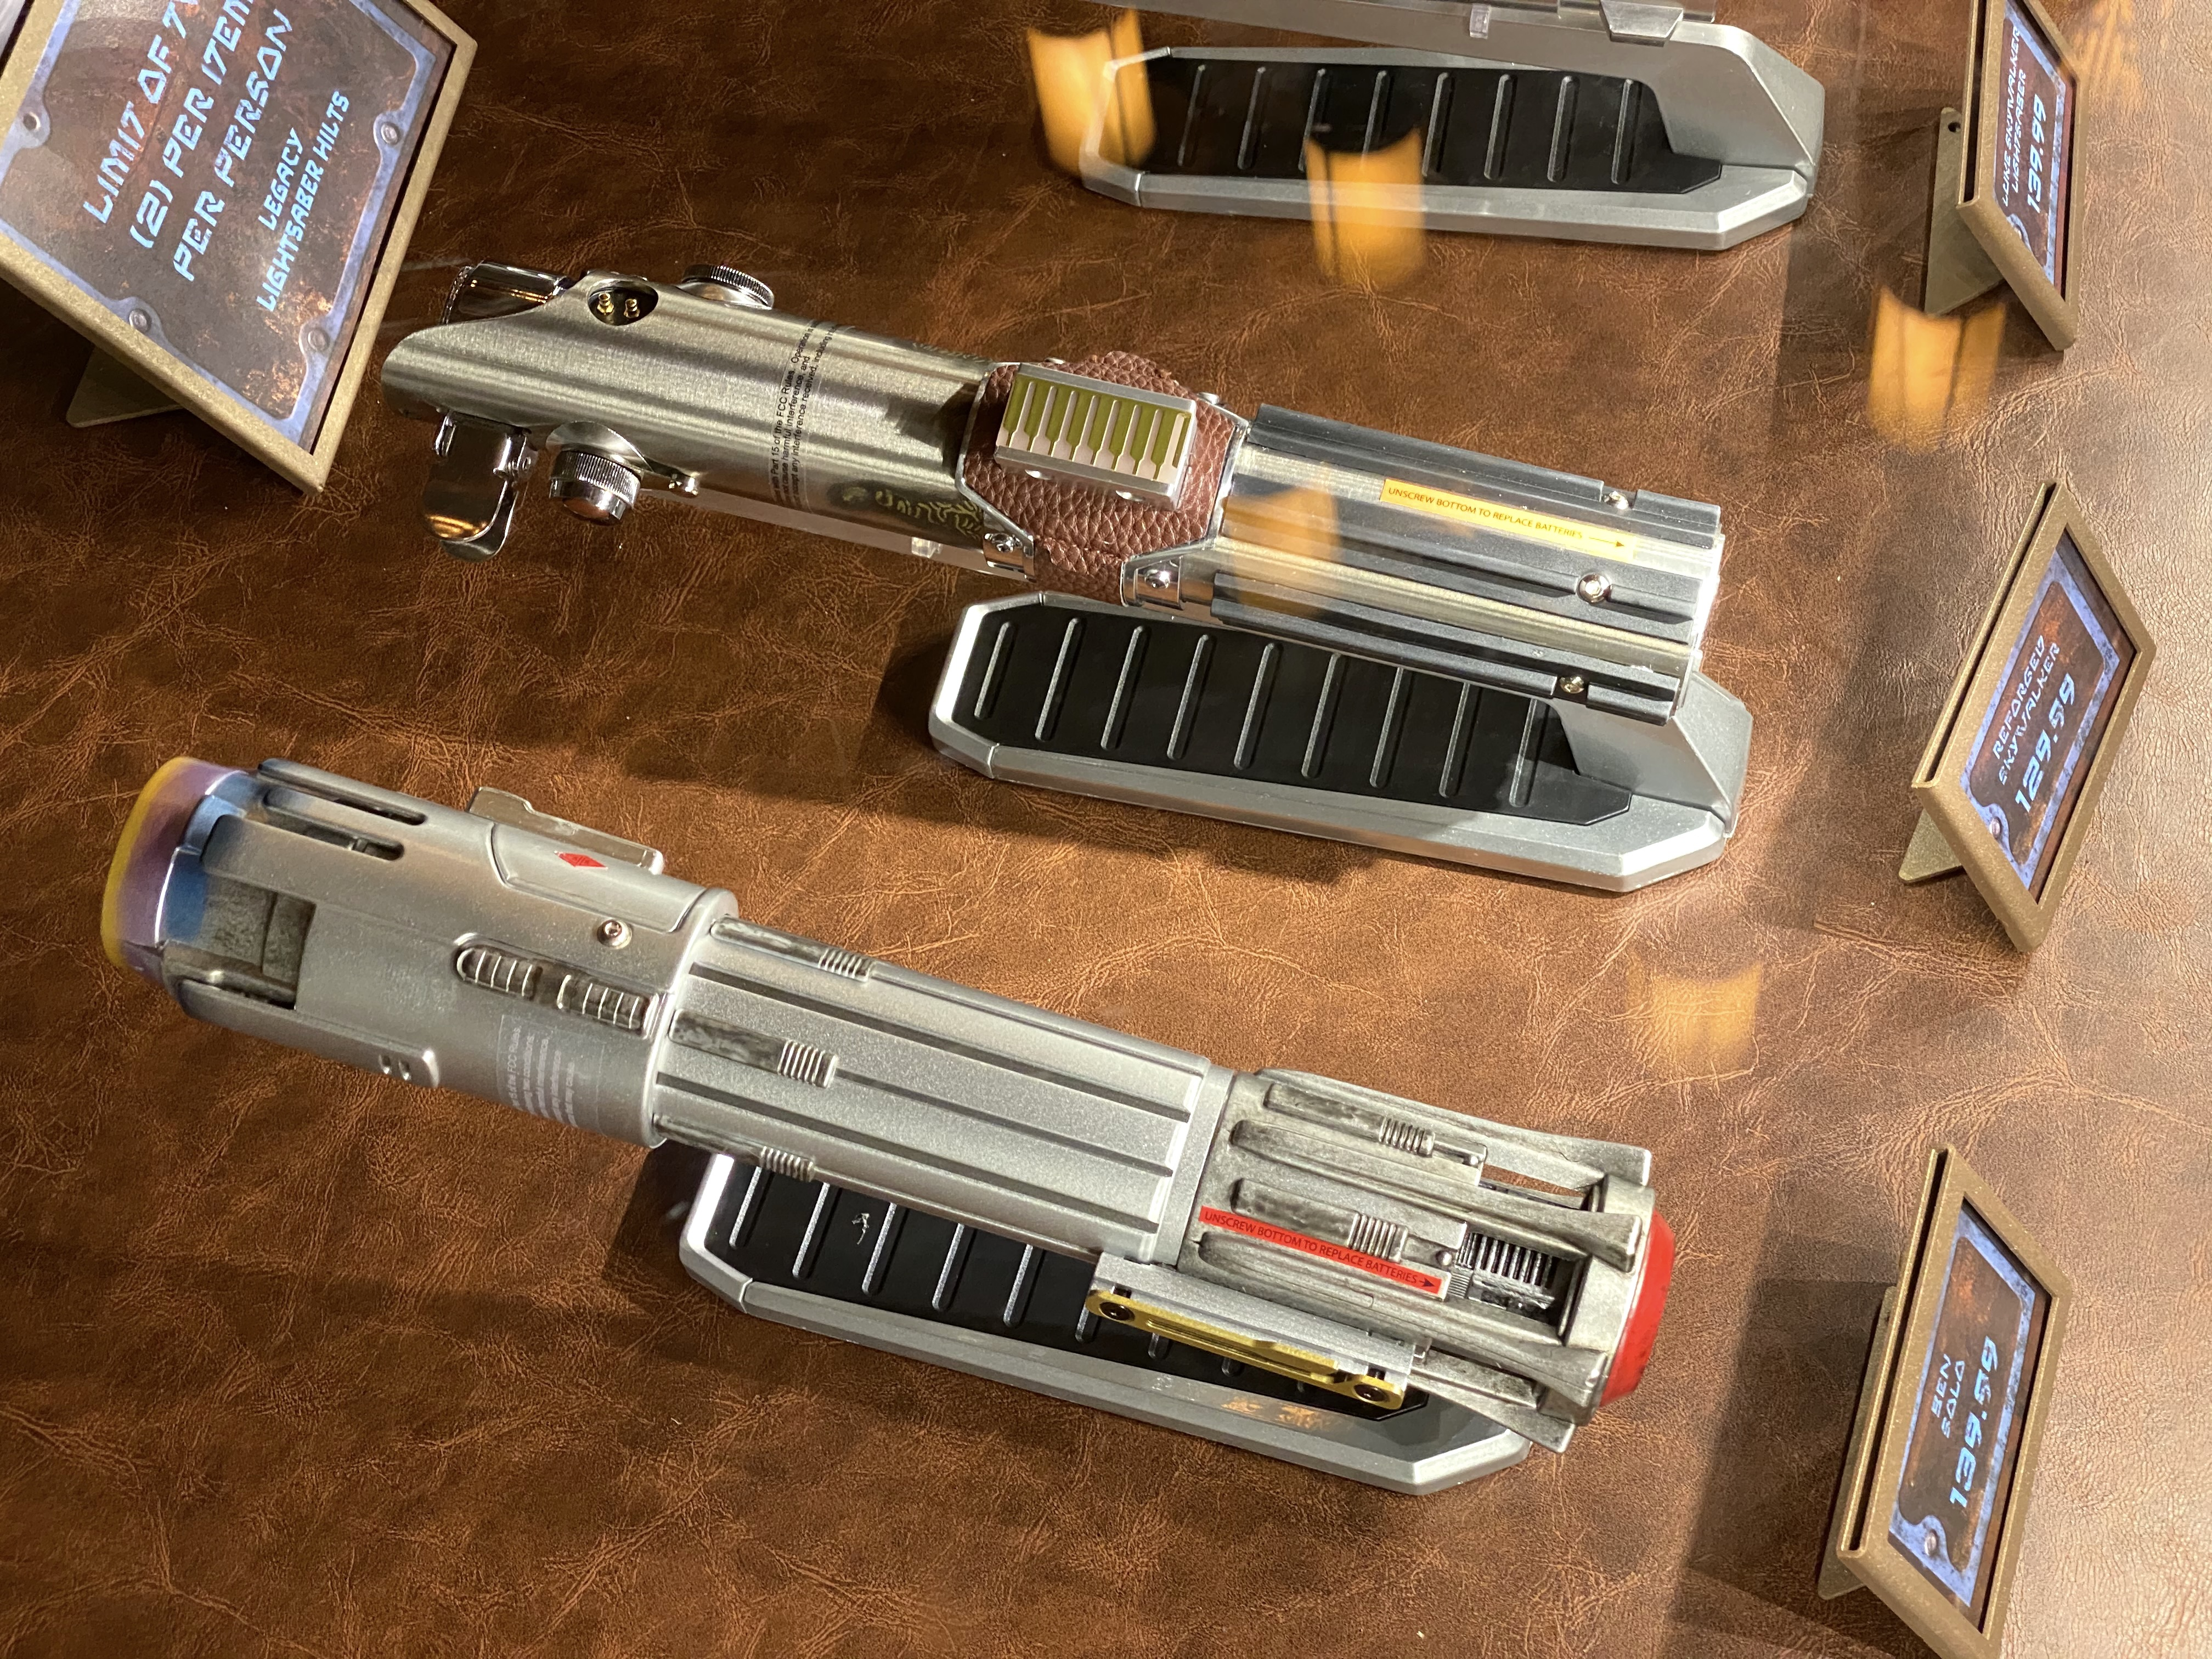 Photos New Ben Solo And Reforged Skywalker Legacy Lightsabers Now Available At Star Wars Galaxy S Edge In Disney S Hollywood Studios Wdw News Today